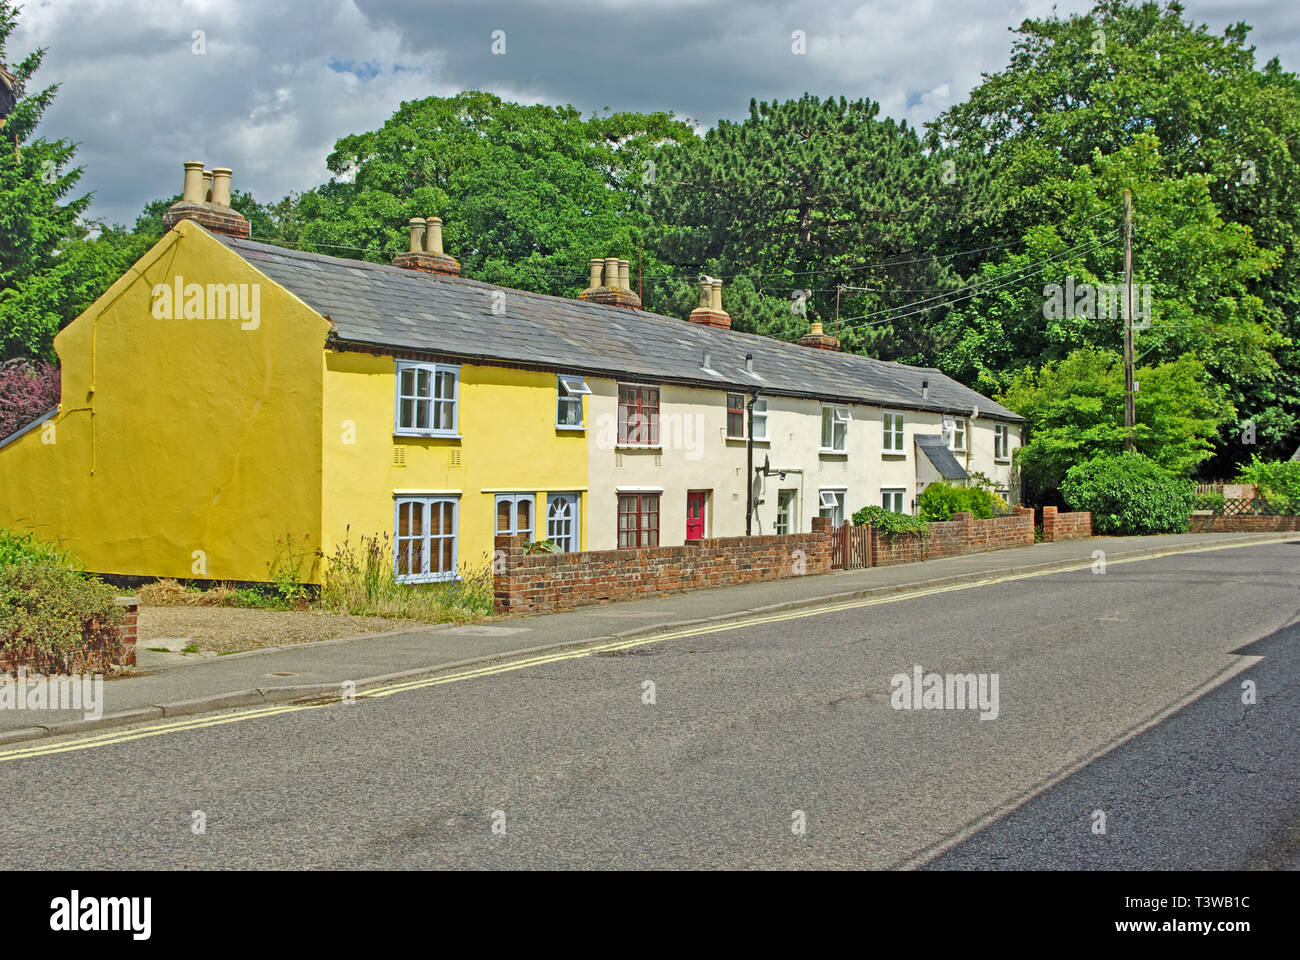 Terrace Cottages, Cavendish, Suffolk - Stock Image